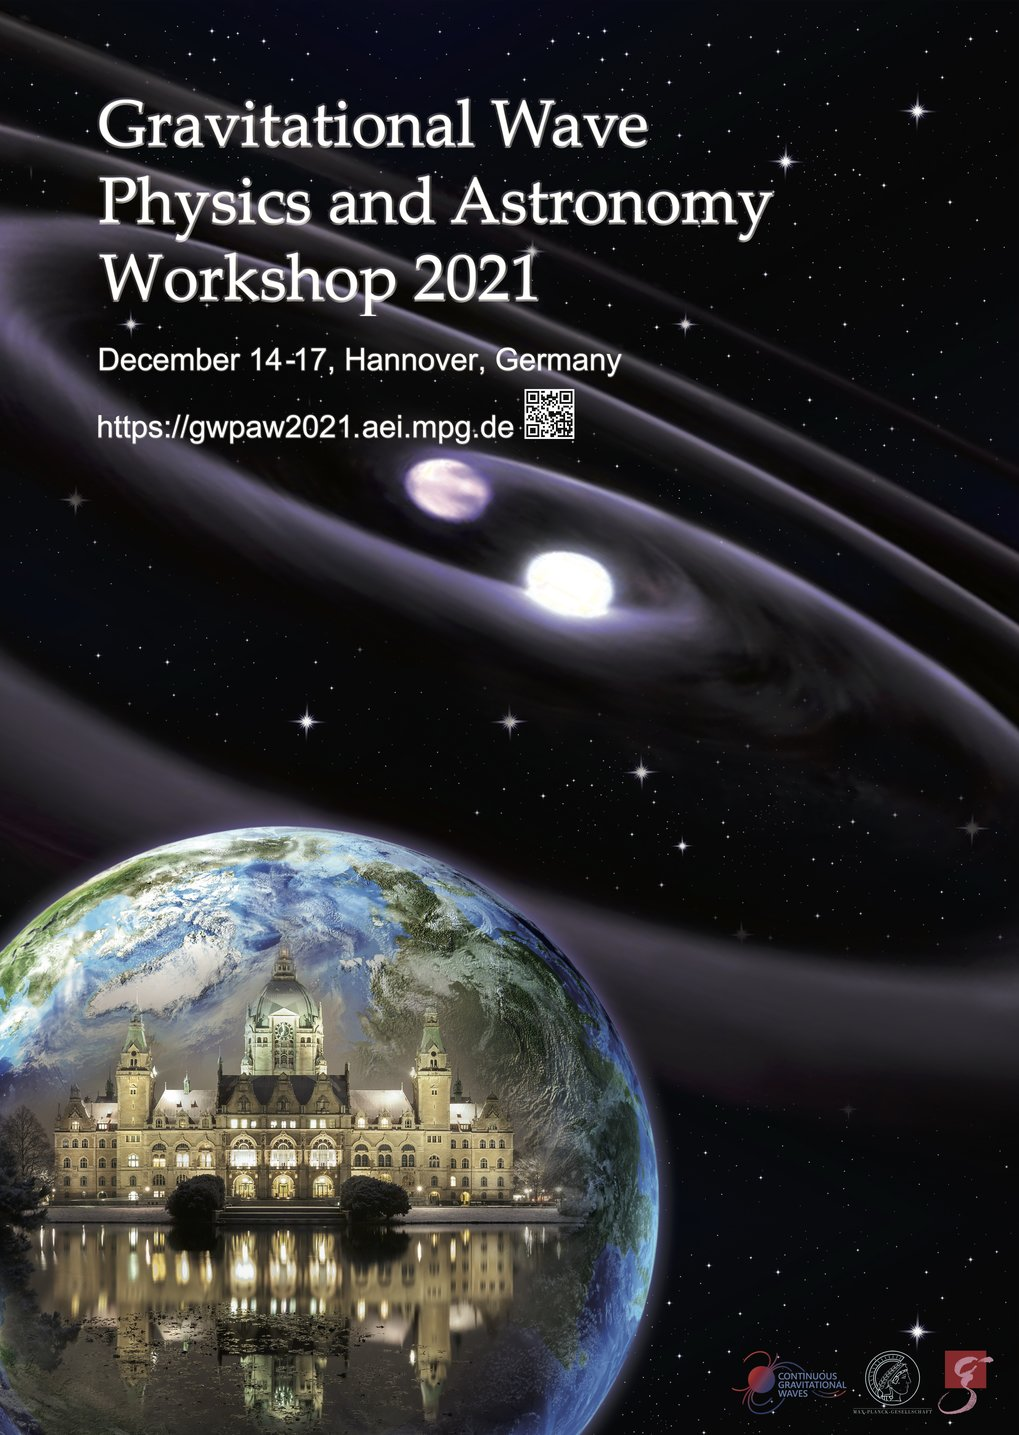 Homepage des Gravitational Wave Physics and Astronomy Workshop 2021, organisiert von unserer Arbeitsgruppe